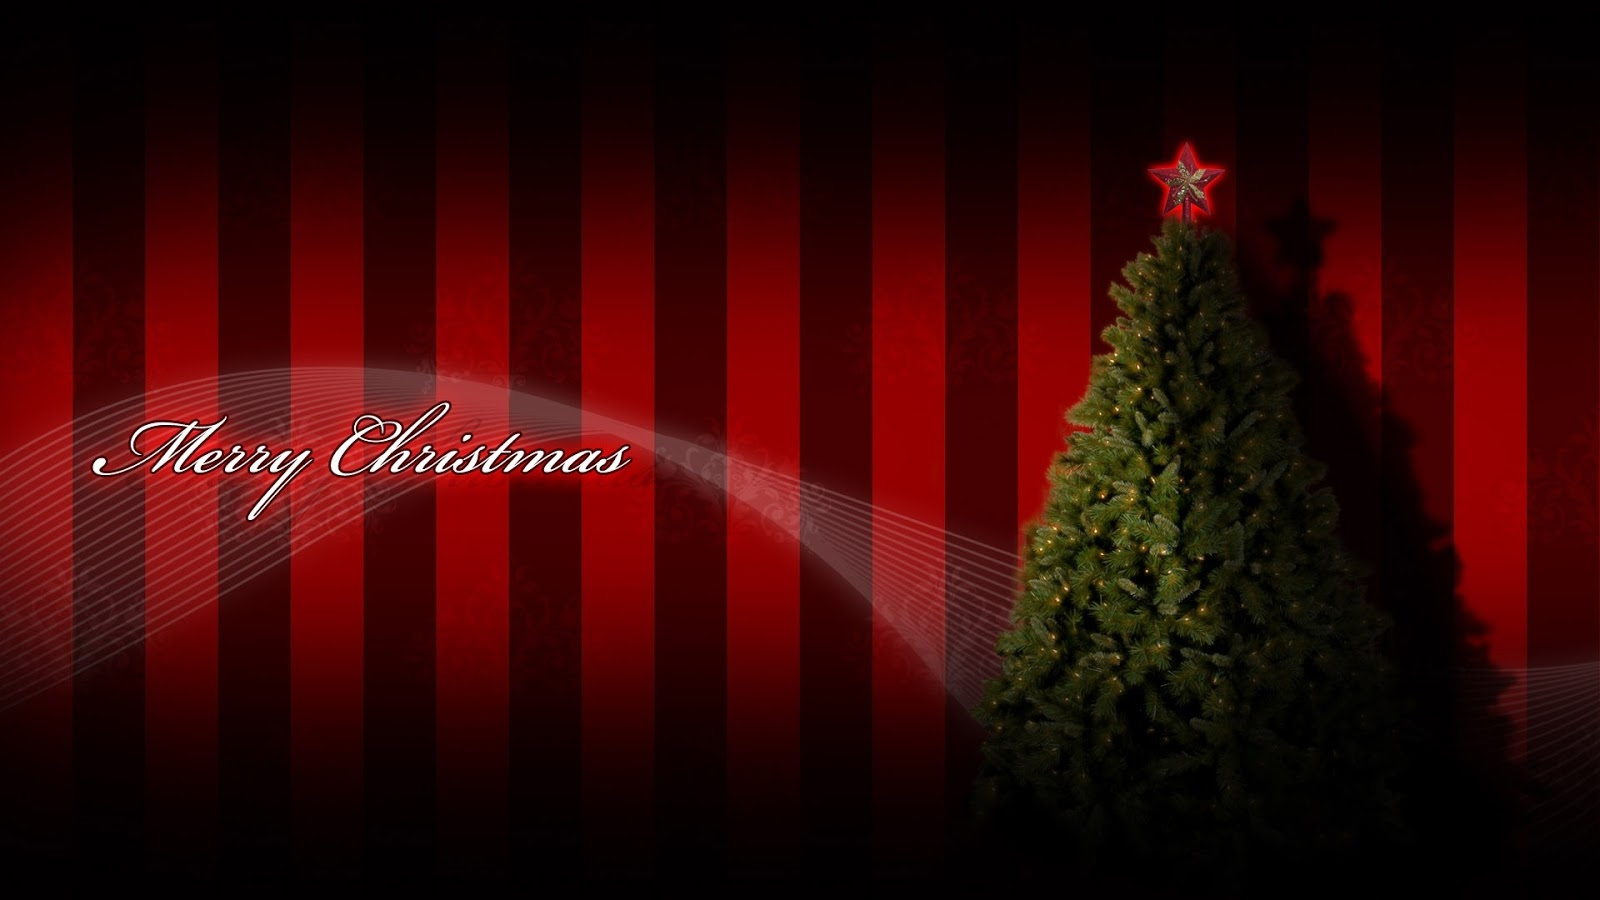 High Definition Wallpapers HD Christmas Wallpaper Download 1600x900